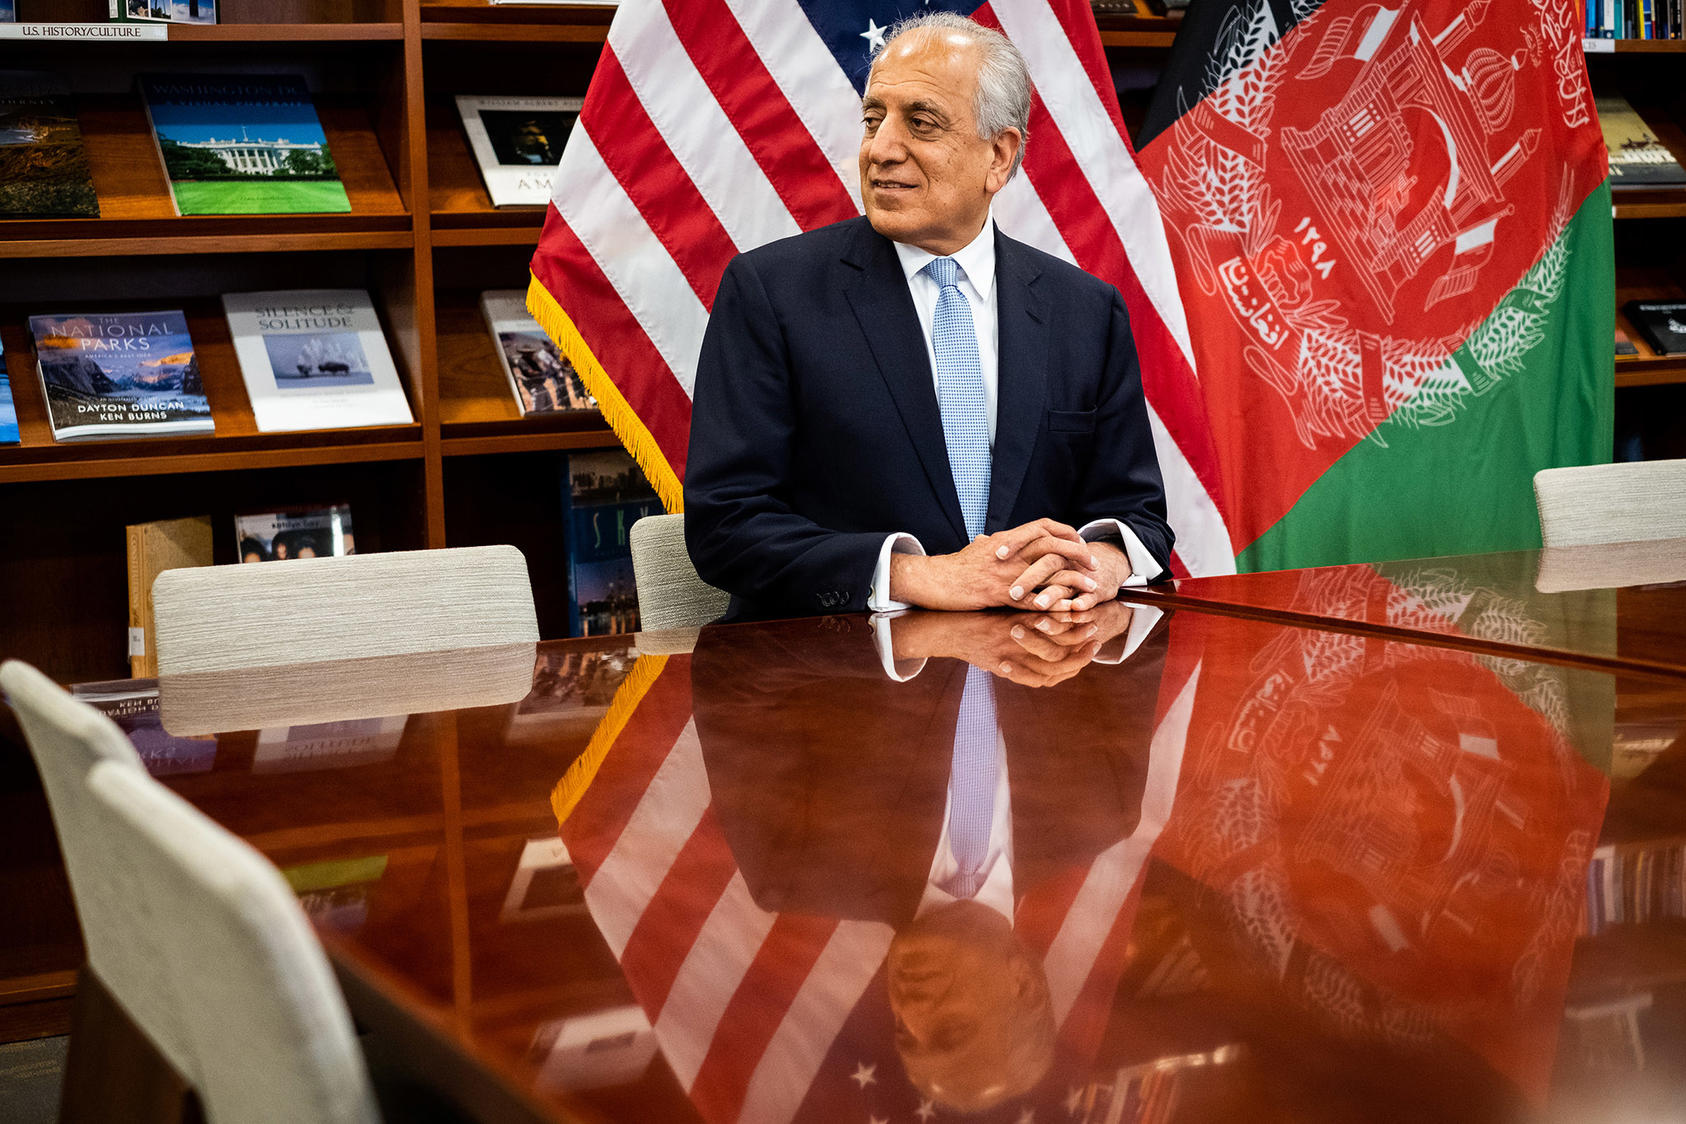 Zalmay Khalilzad at the United States Embassy in Kabul, Afghanistan on Jan. 28, 2018. (Jim Huylebroek/The New York Times)